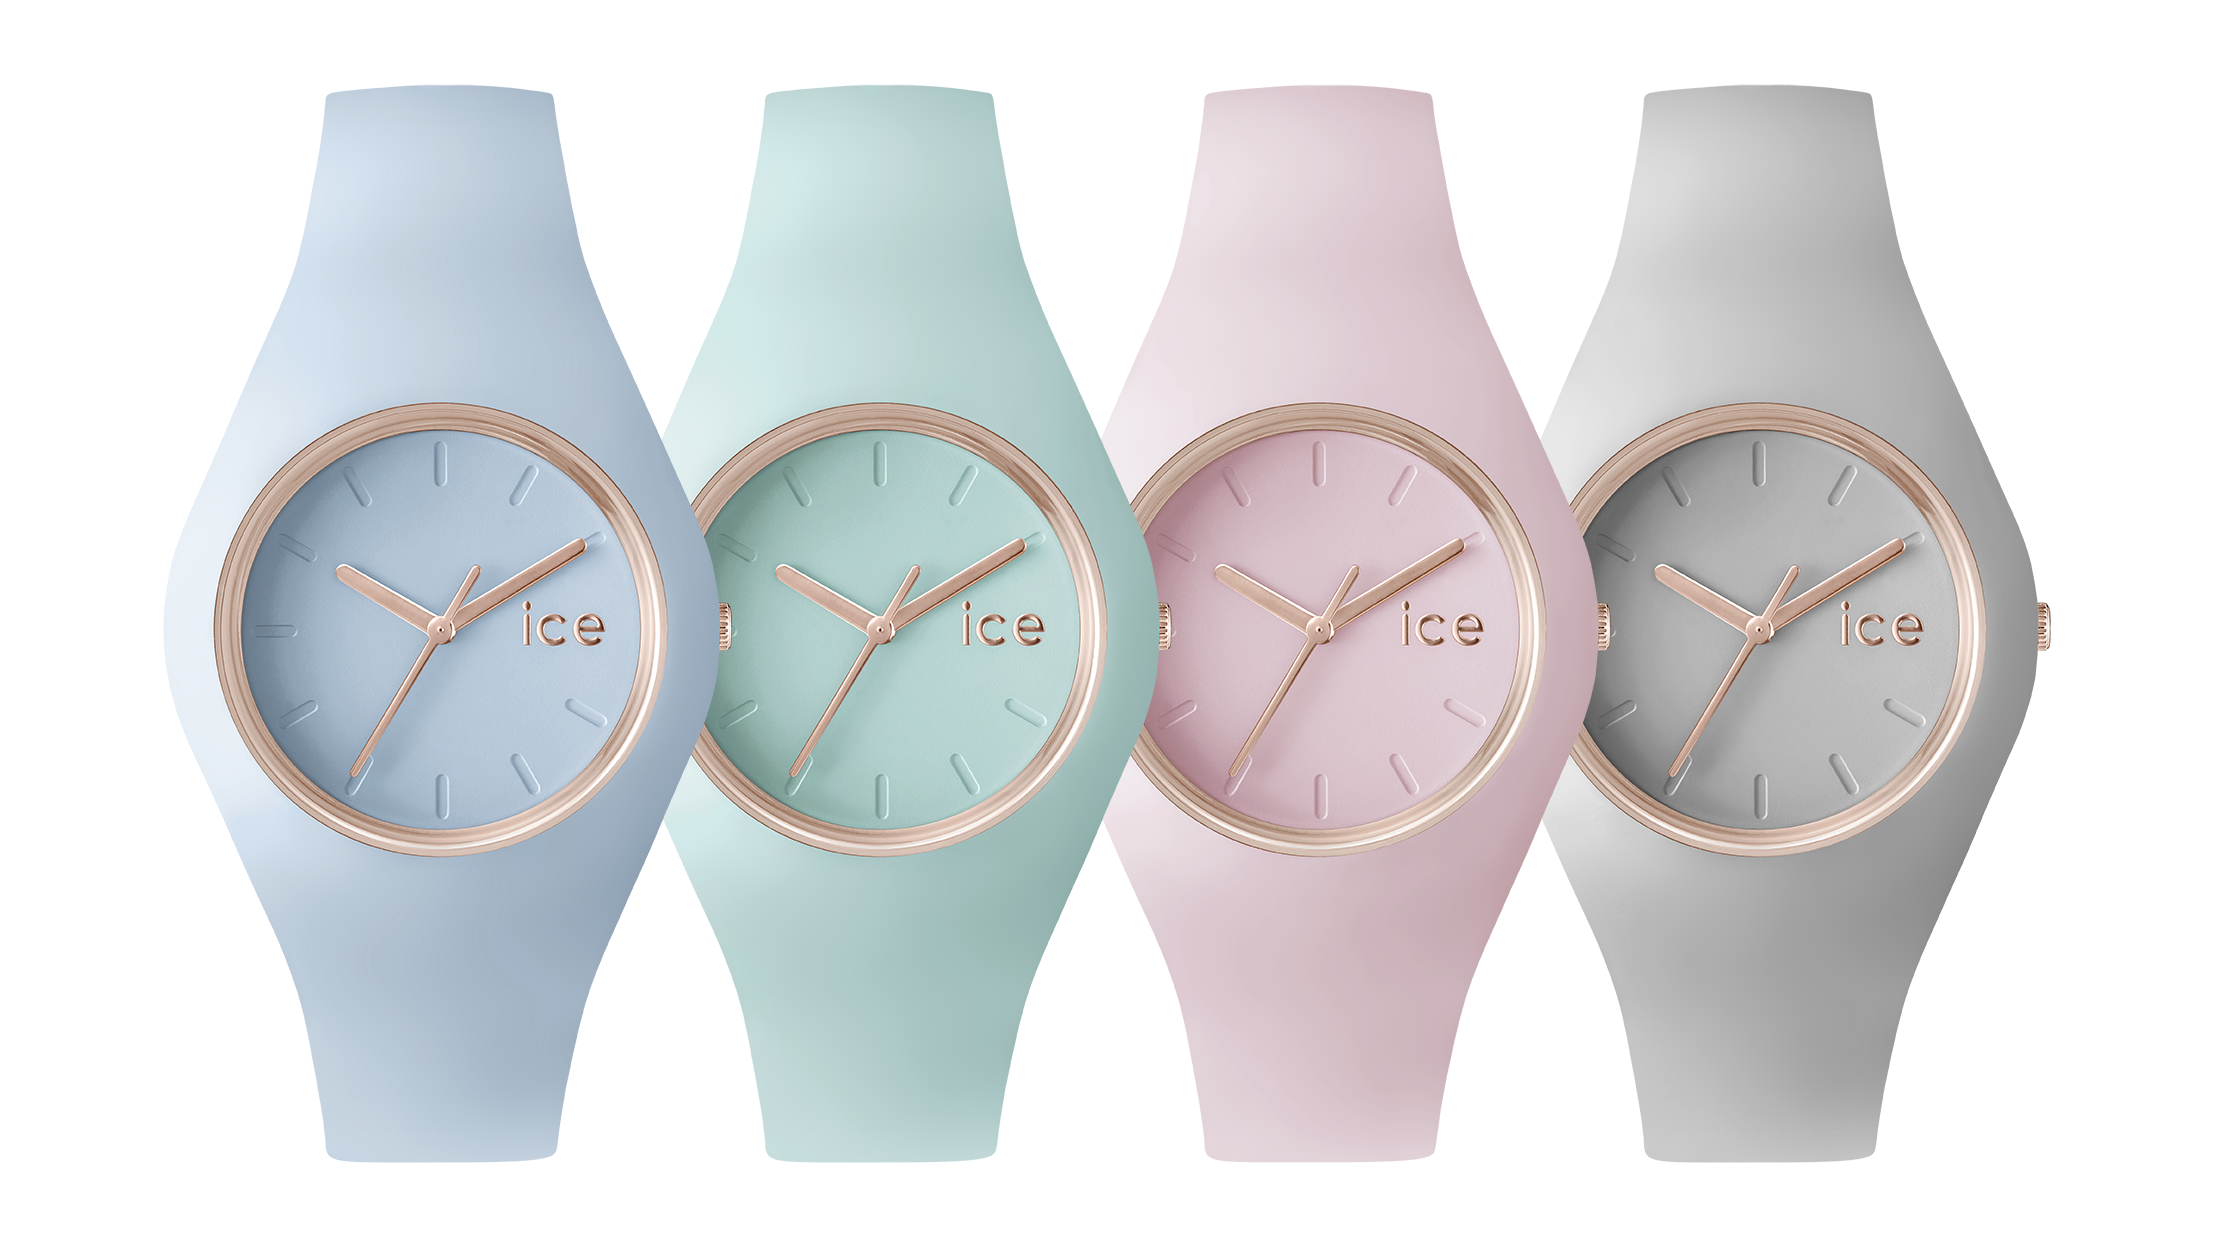 PastelWatches Ice Glam PastelWatches Glam Watches WatchFashion Ice WatchFashion PkOXZTiu